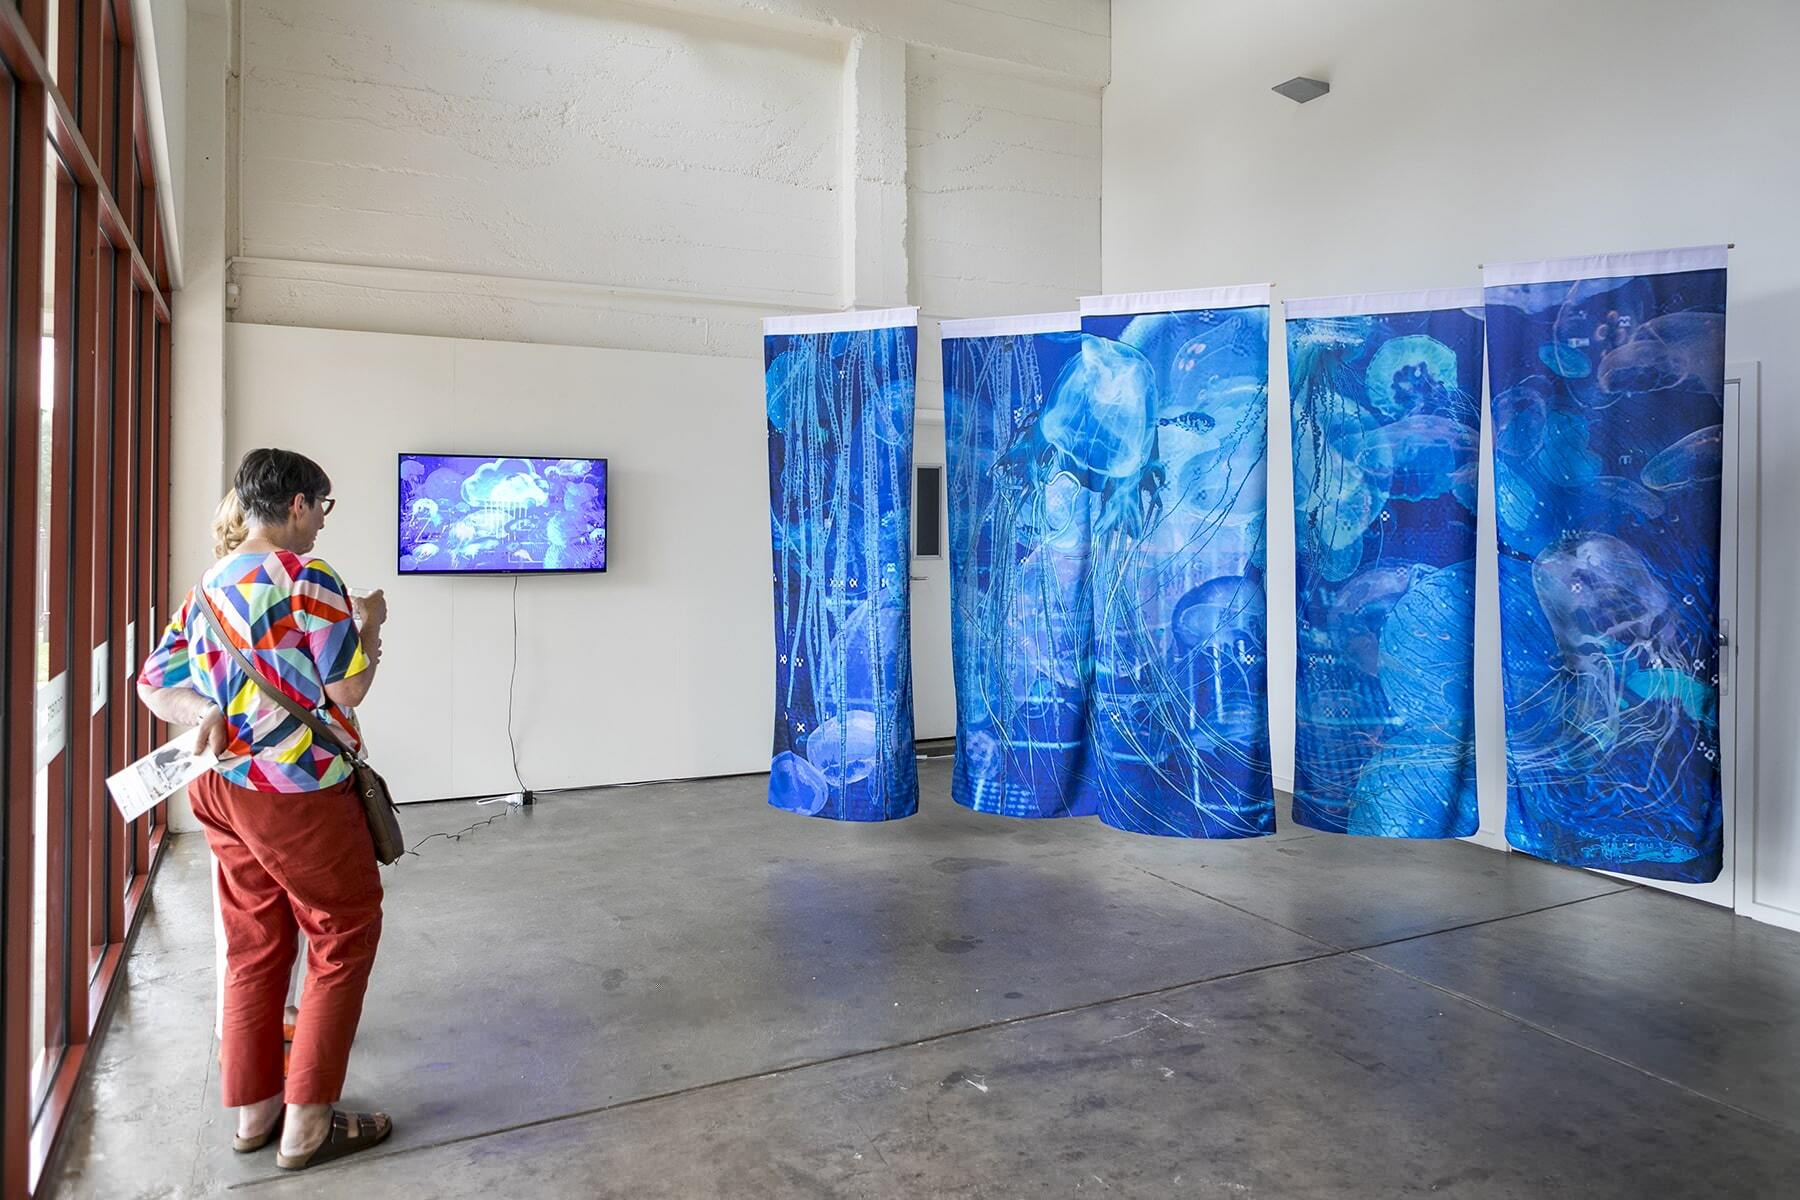 Installation view of SWARM at Incinerator Gallery, Melbourne